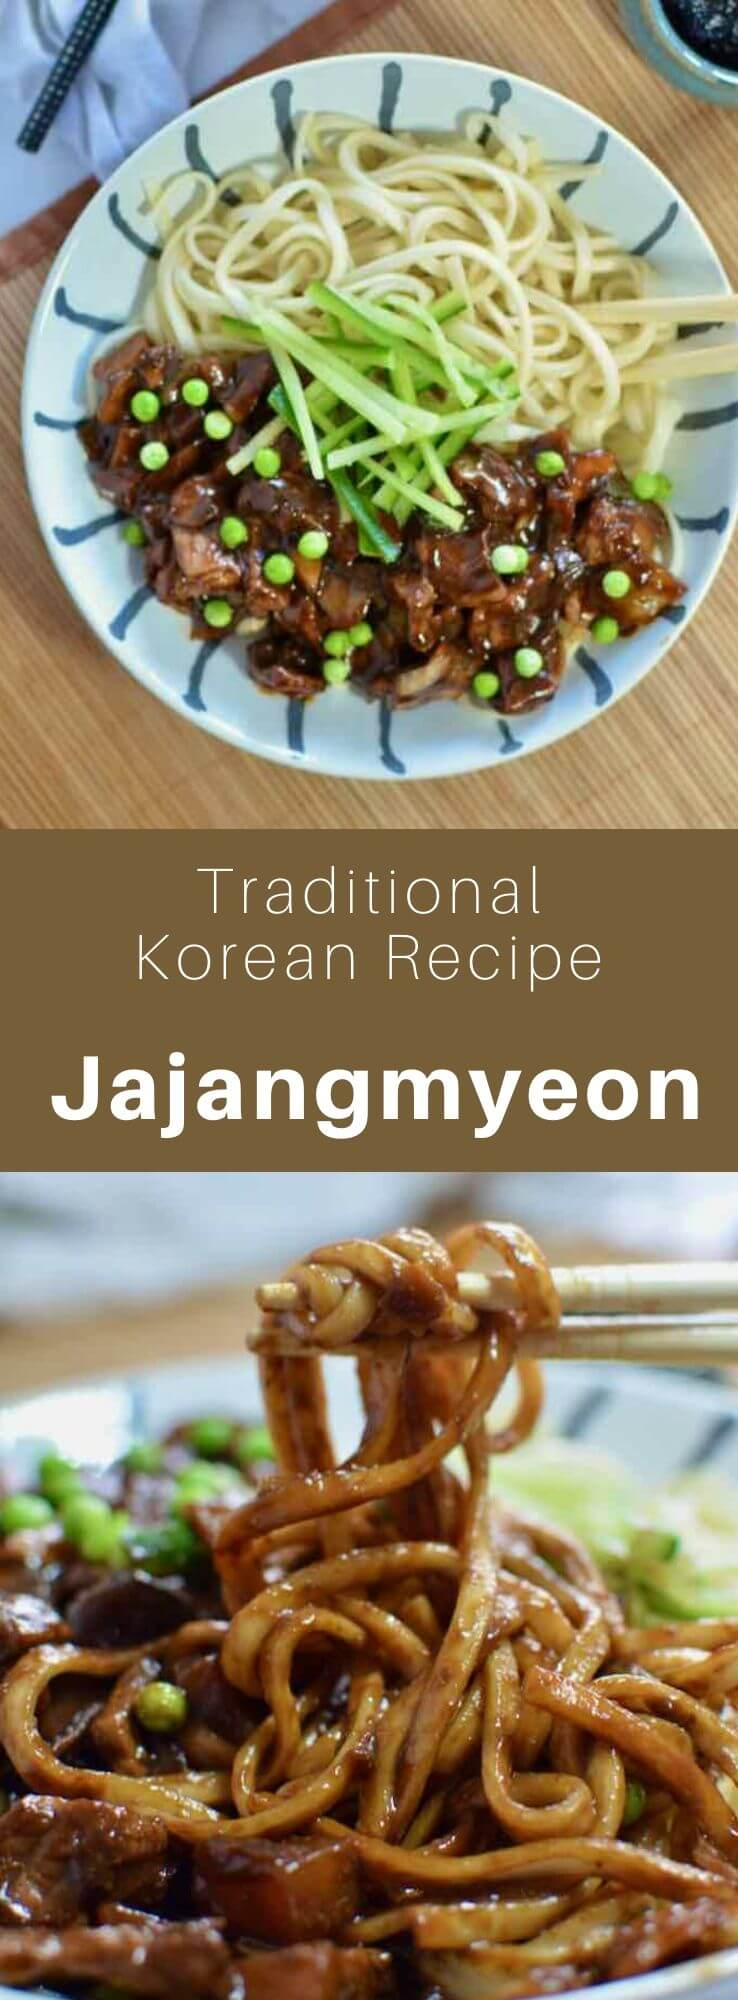 Jajangmyeon (짜장면) is a Korean specialty made from noodles with a fermented black soybean paste, onions, zucchini and potatoes. #KoreanFood #KoreanRecipe #KoreanCuisine #WorldCuisine #196flavors